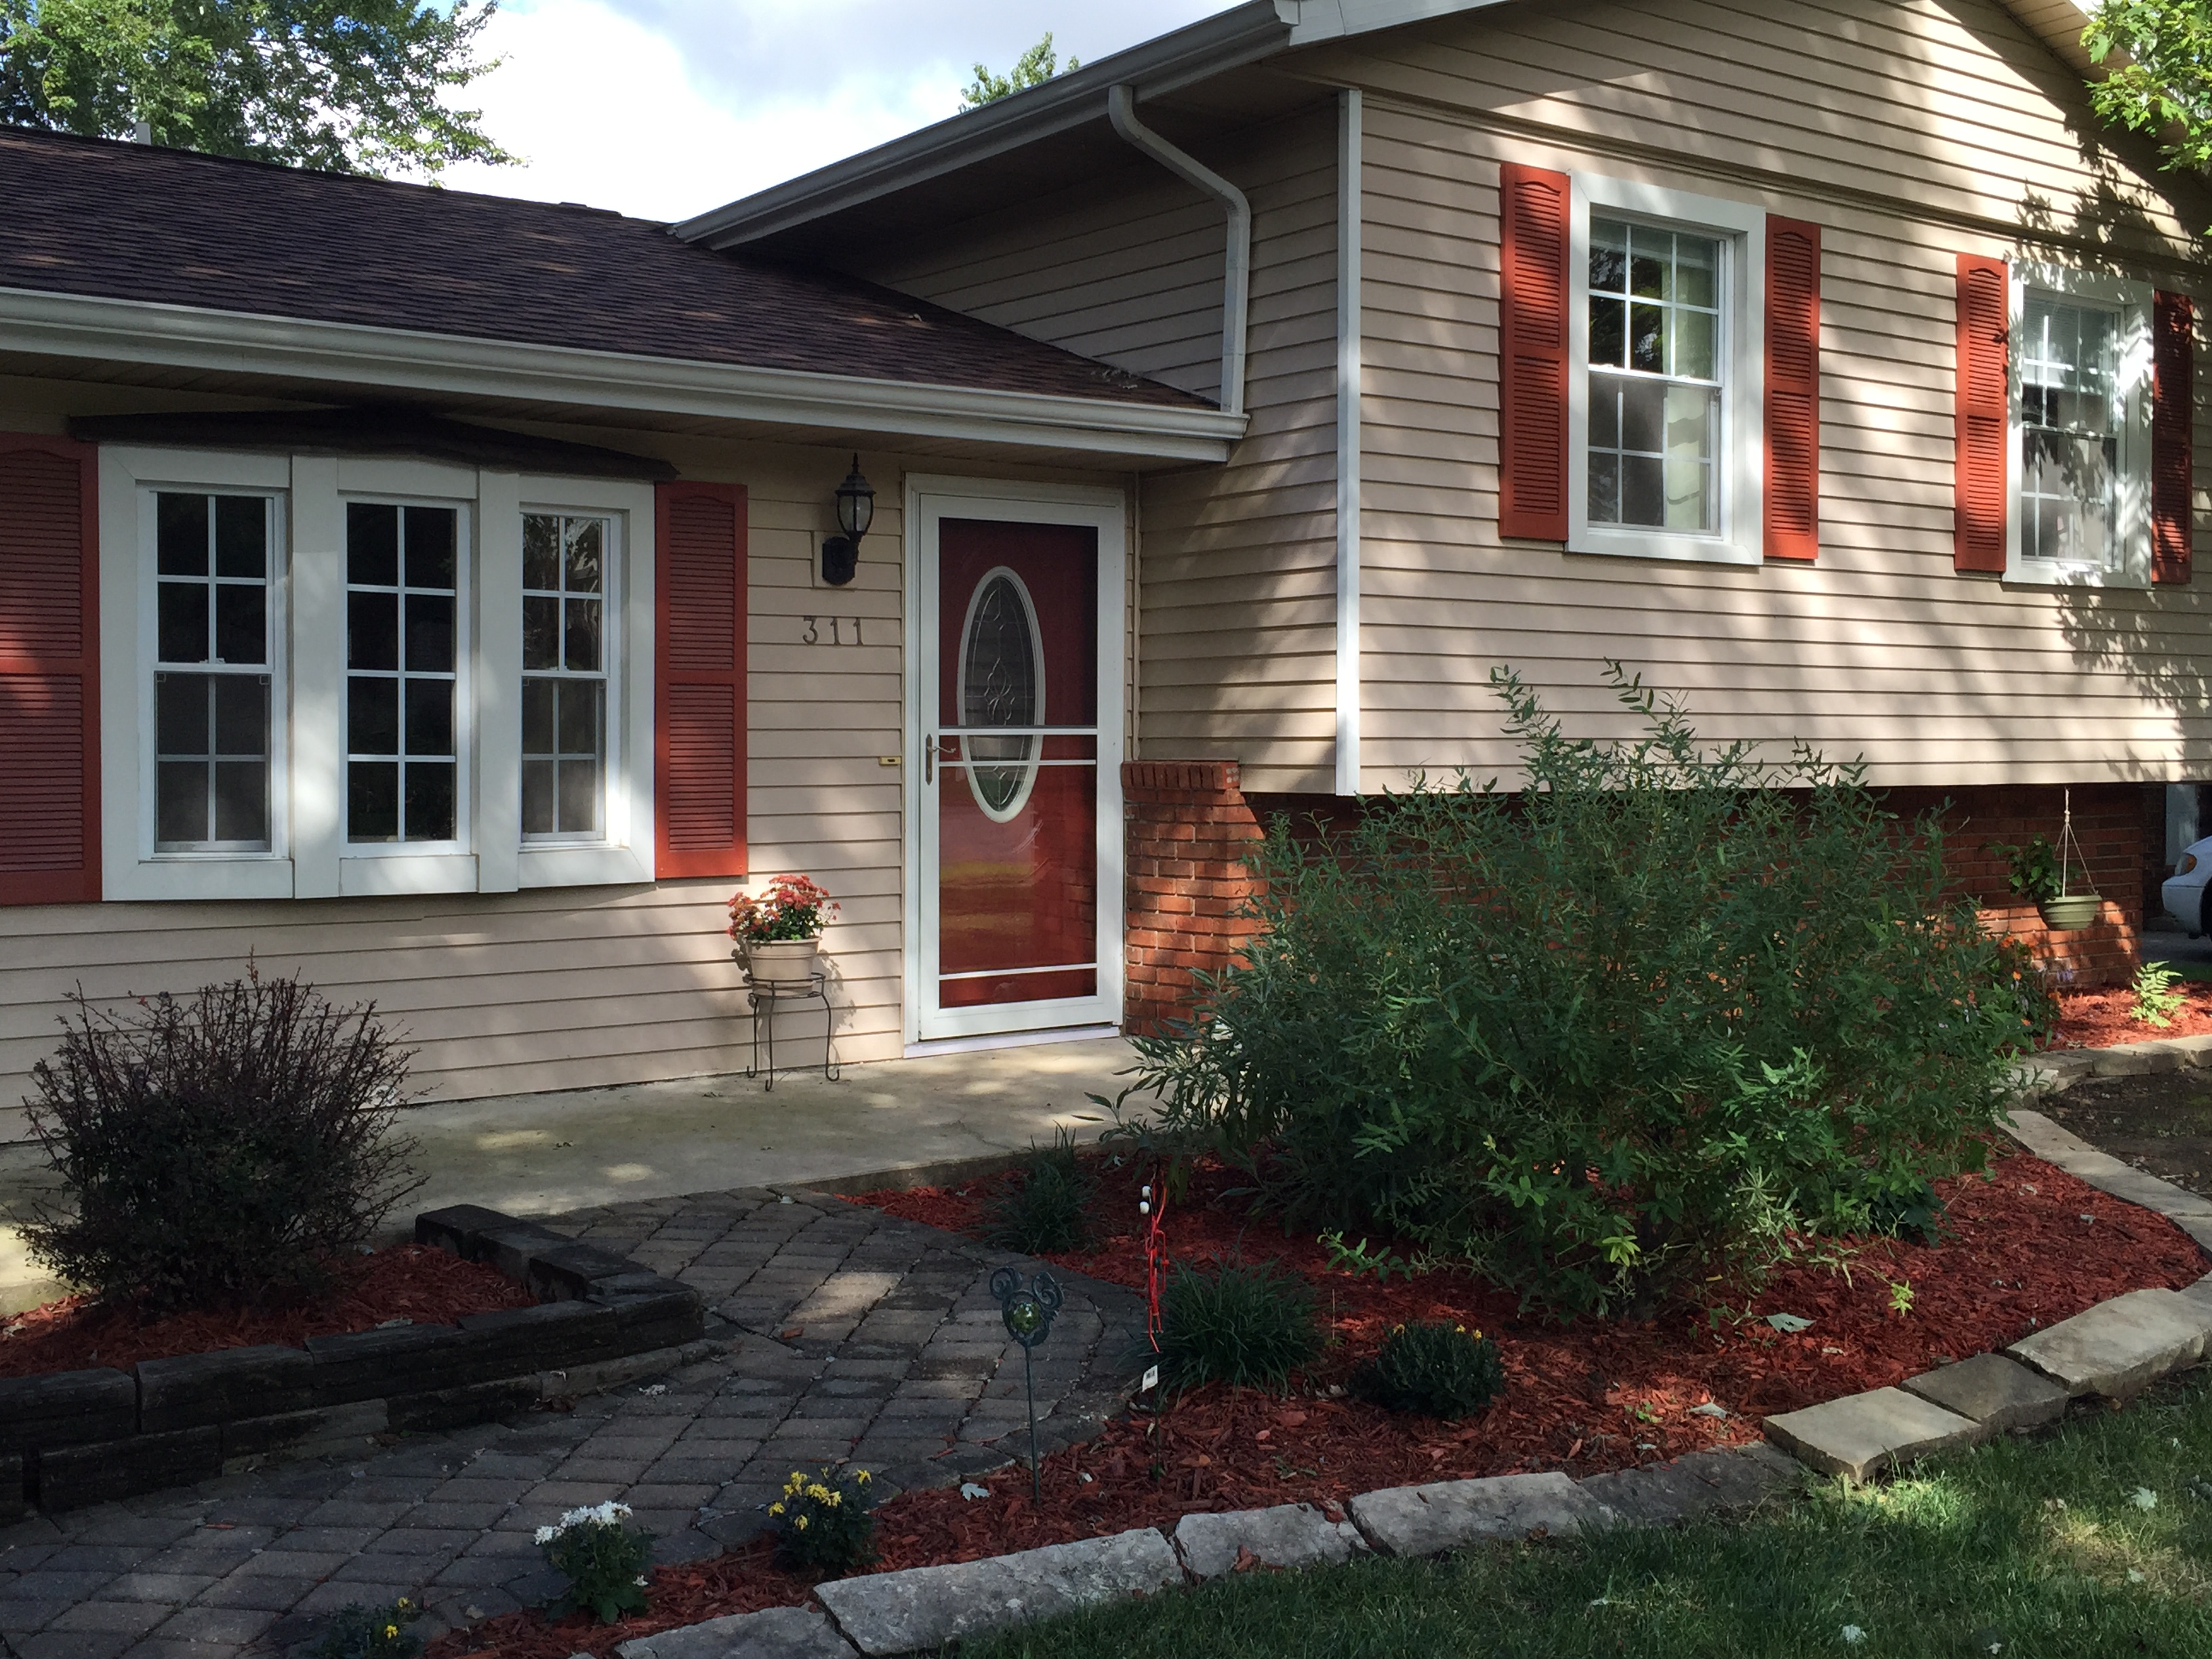 of this beautiful home for sale in Normal  IL  Real Estate Agents are  eager to help  Contact us with any additional questions or to arrange a  showing This 3 Bedroom House For Sale is Amazing Inside with a Great  . 3 Bedroom House For Rent Normal Il. Home Design Ideas